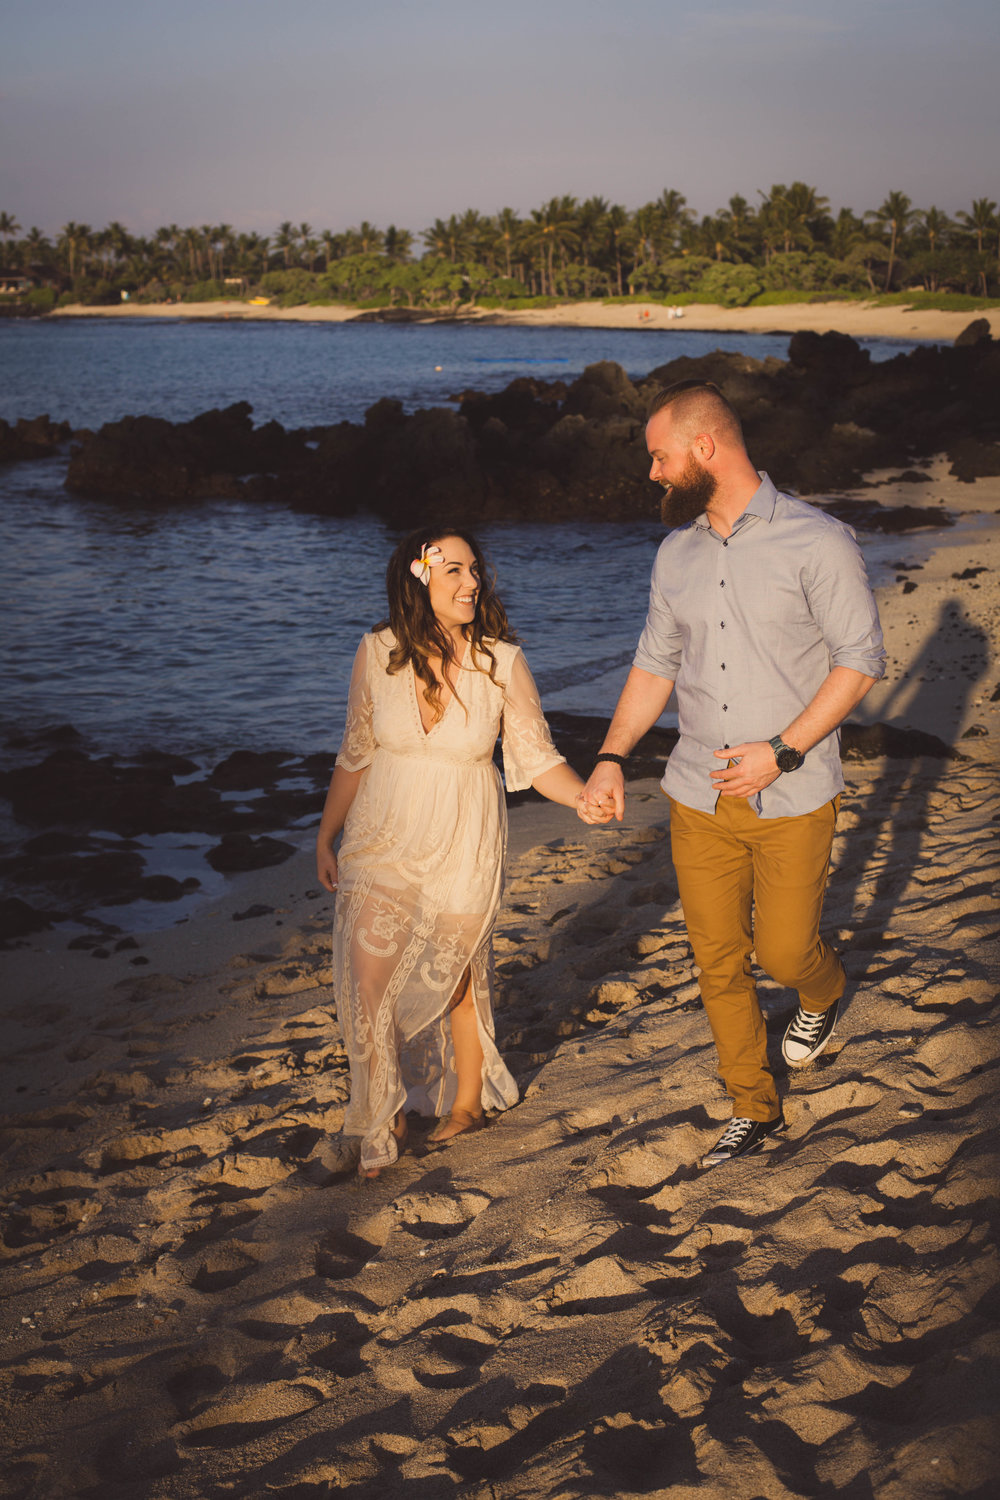 big island hawaii kukio beach engagement © kelilina photography 20171226170444-1.jpg